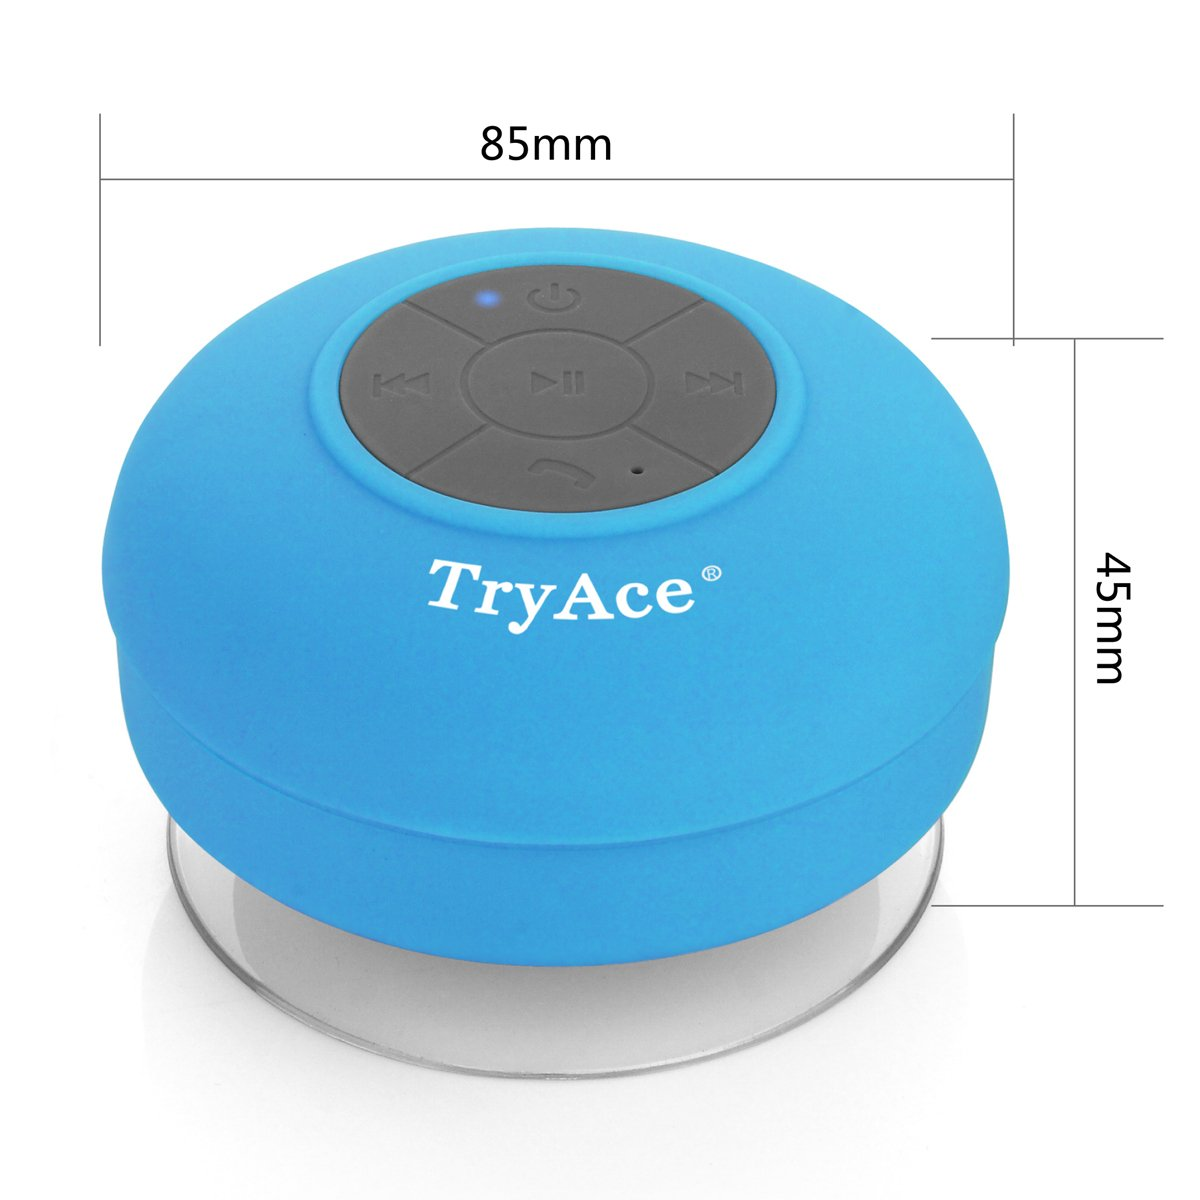 Tryace Bluetooth Waterproof Speaker With Built In Mic Bts 06 Original Dedicated Suction Cup Blue Home Audio Theater